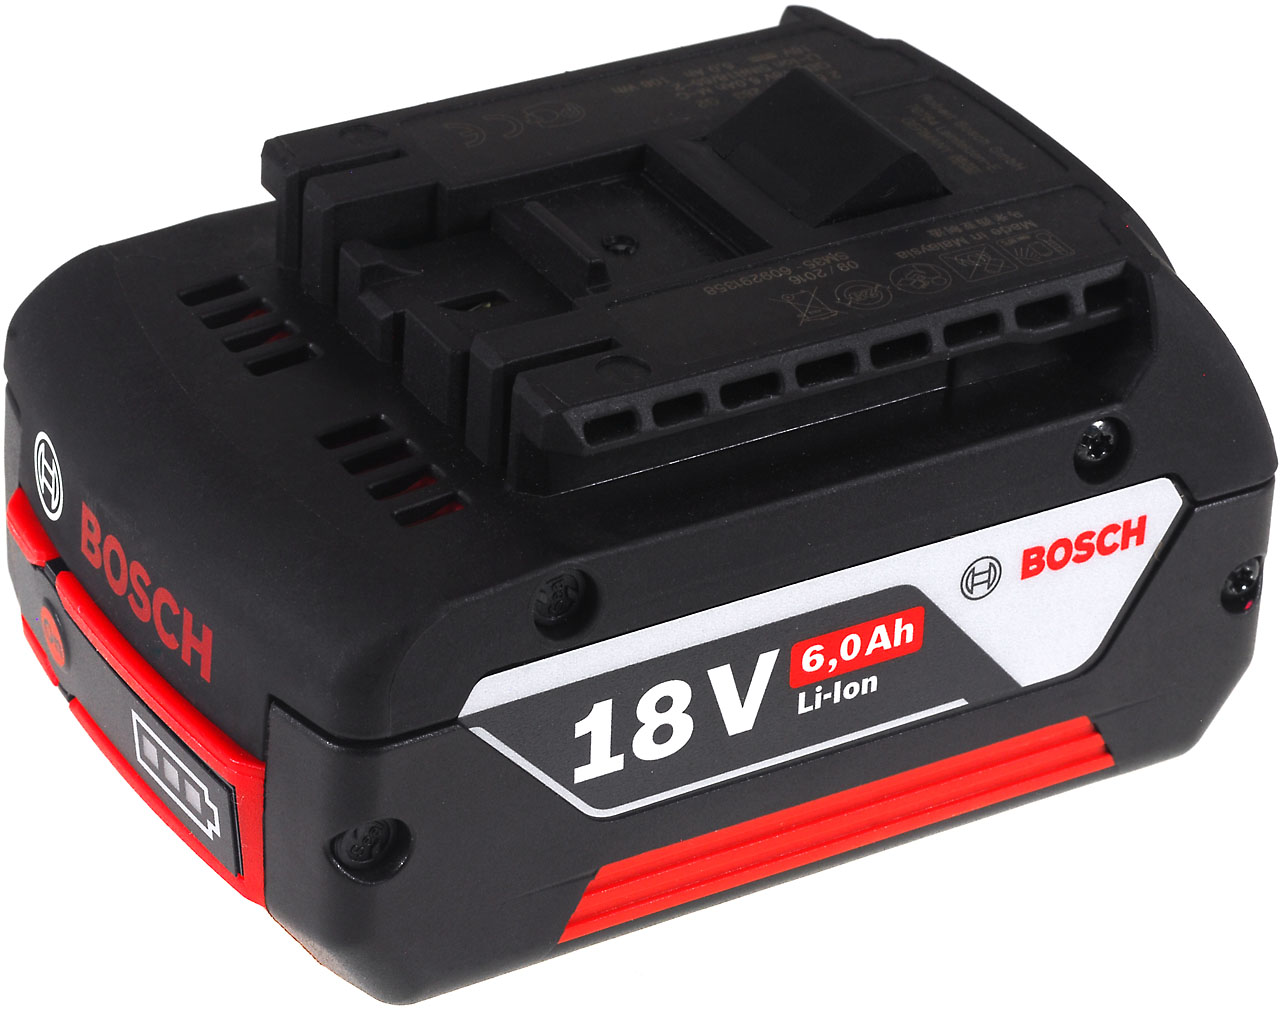 Acumulator original Bosch model 1600A004ZN